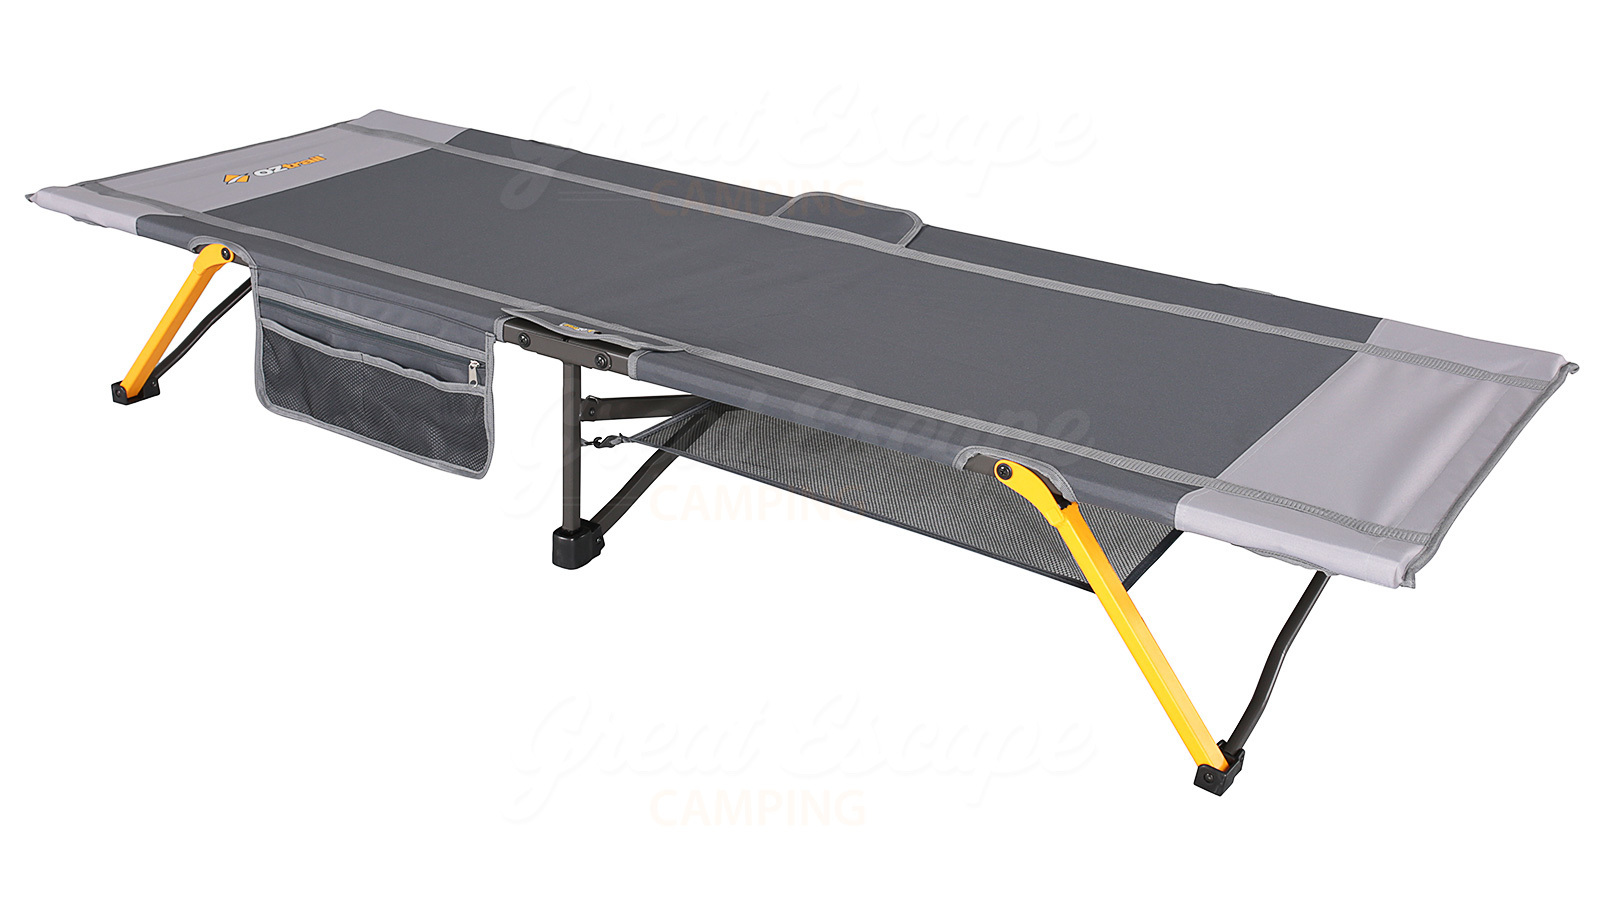 oztrail-easy-fold-low-rise-single-stretcher-setup-literally-takes-10-seconds--150kg-fbs-ssel-d